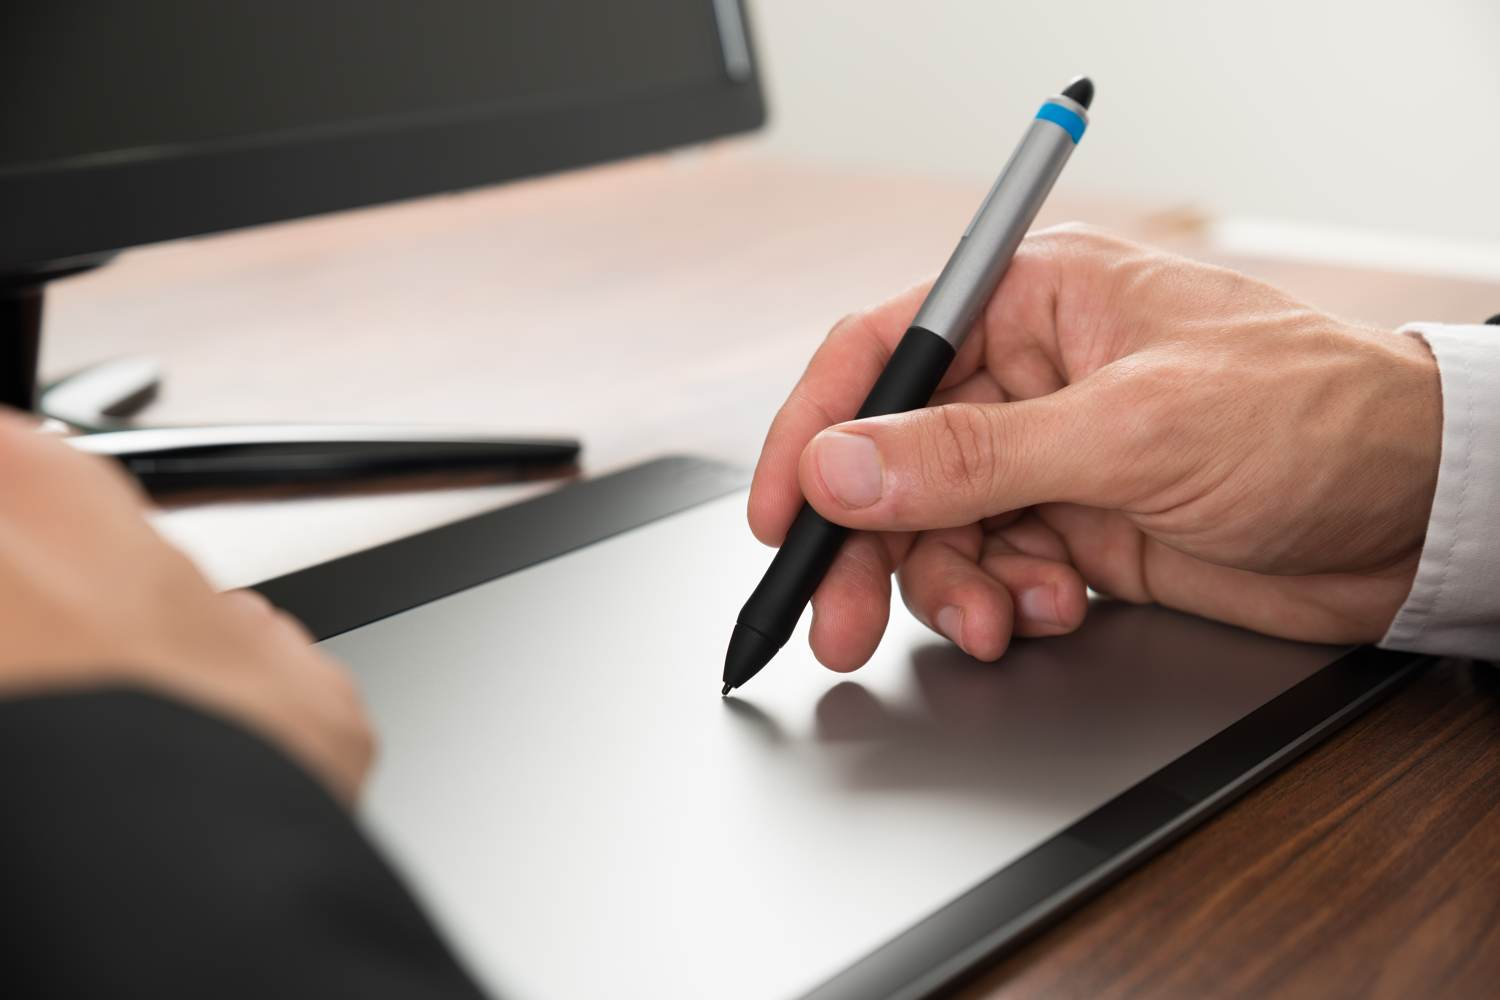 Man writing on graphic design tablet